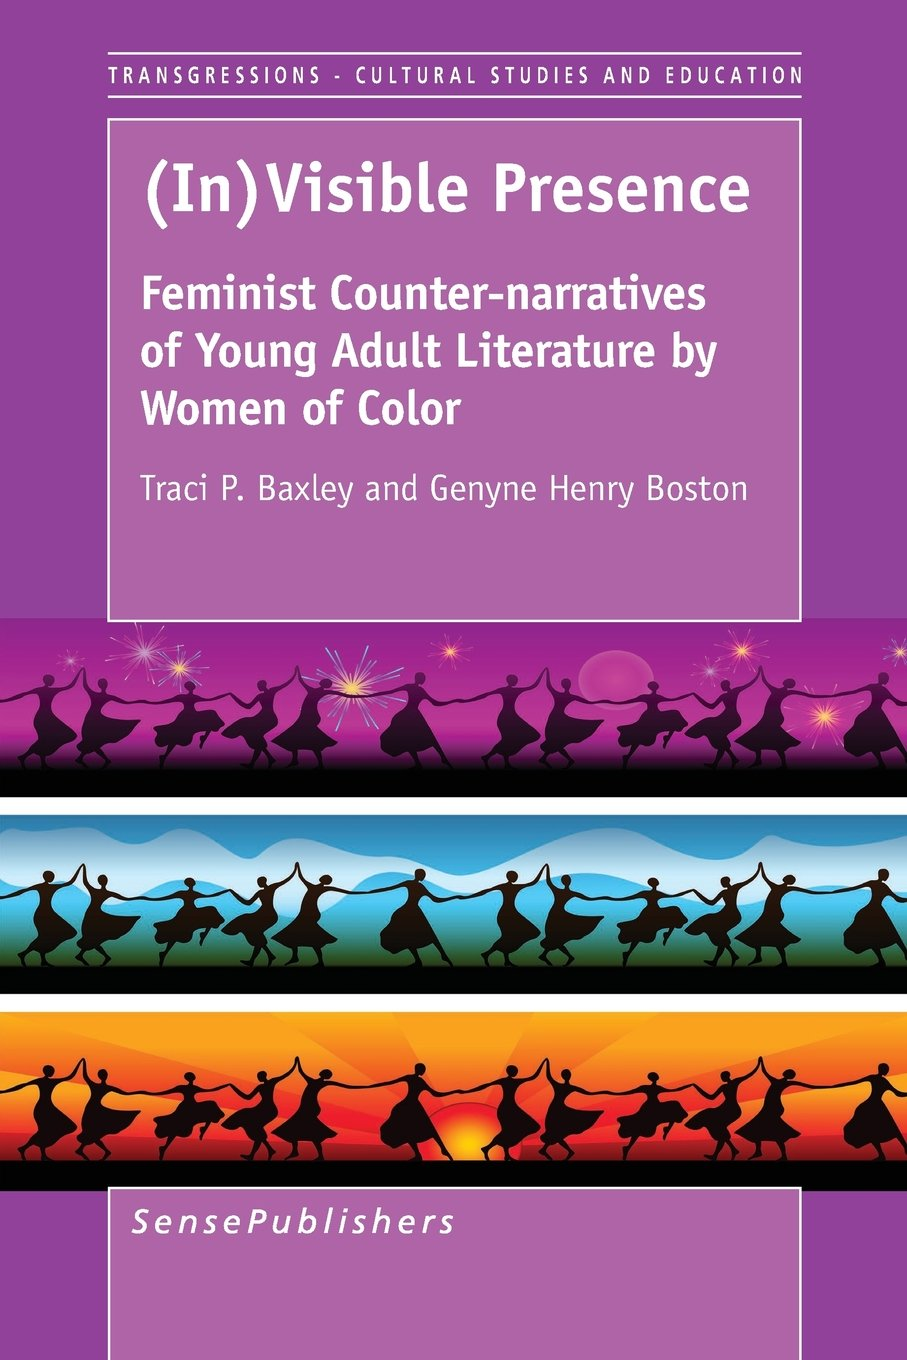 Read Online (In)Visible Presence: Feminist Counter-Narratives of Young Adult Literature by Women of Color (Transgressions: Cultural Studies and Education) pdf